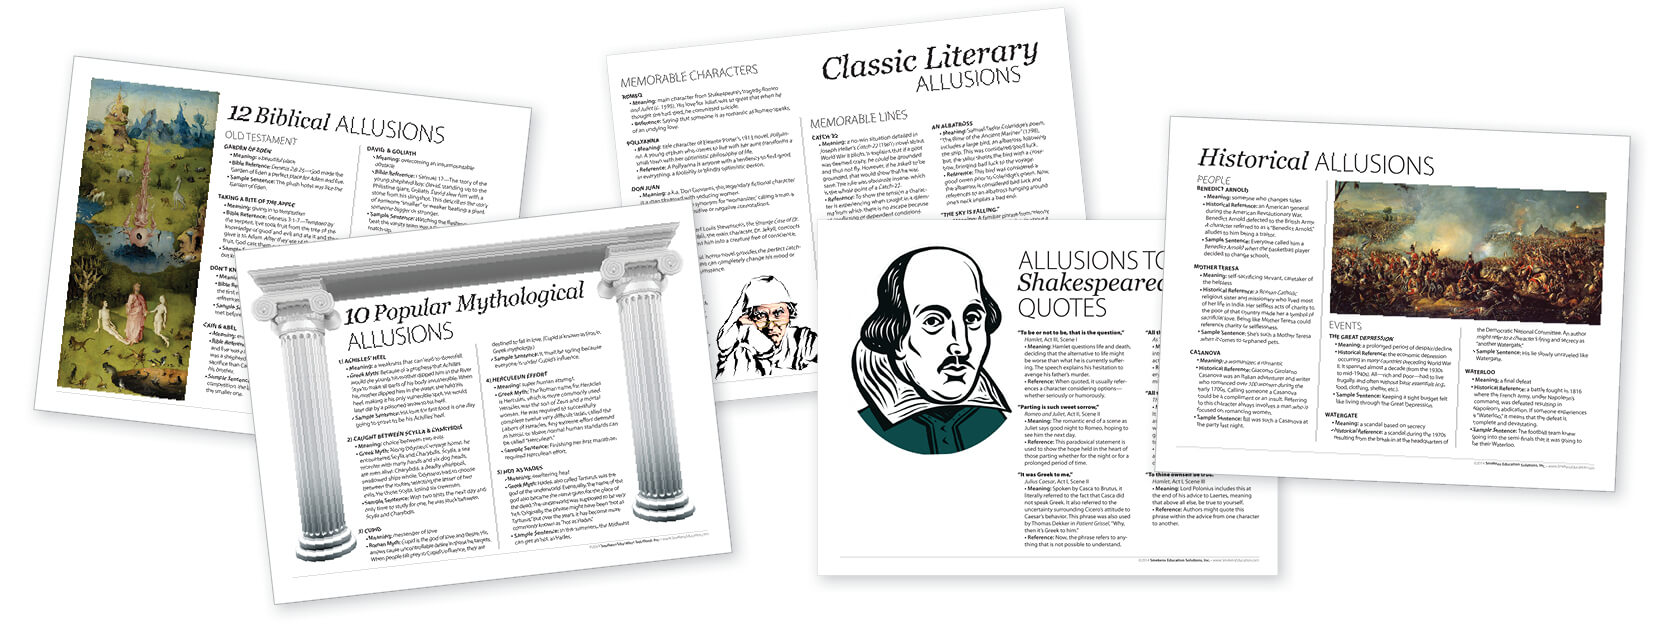 Boost Background Knowledge to Understand Author Allusions